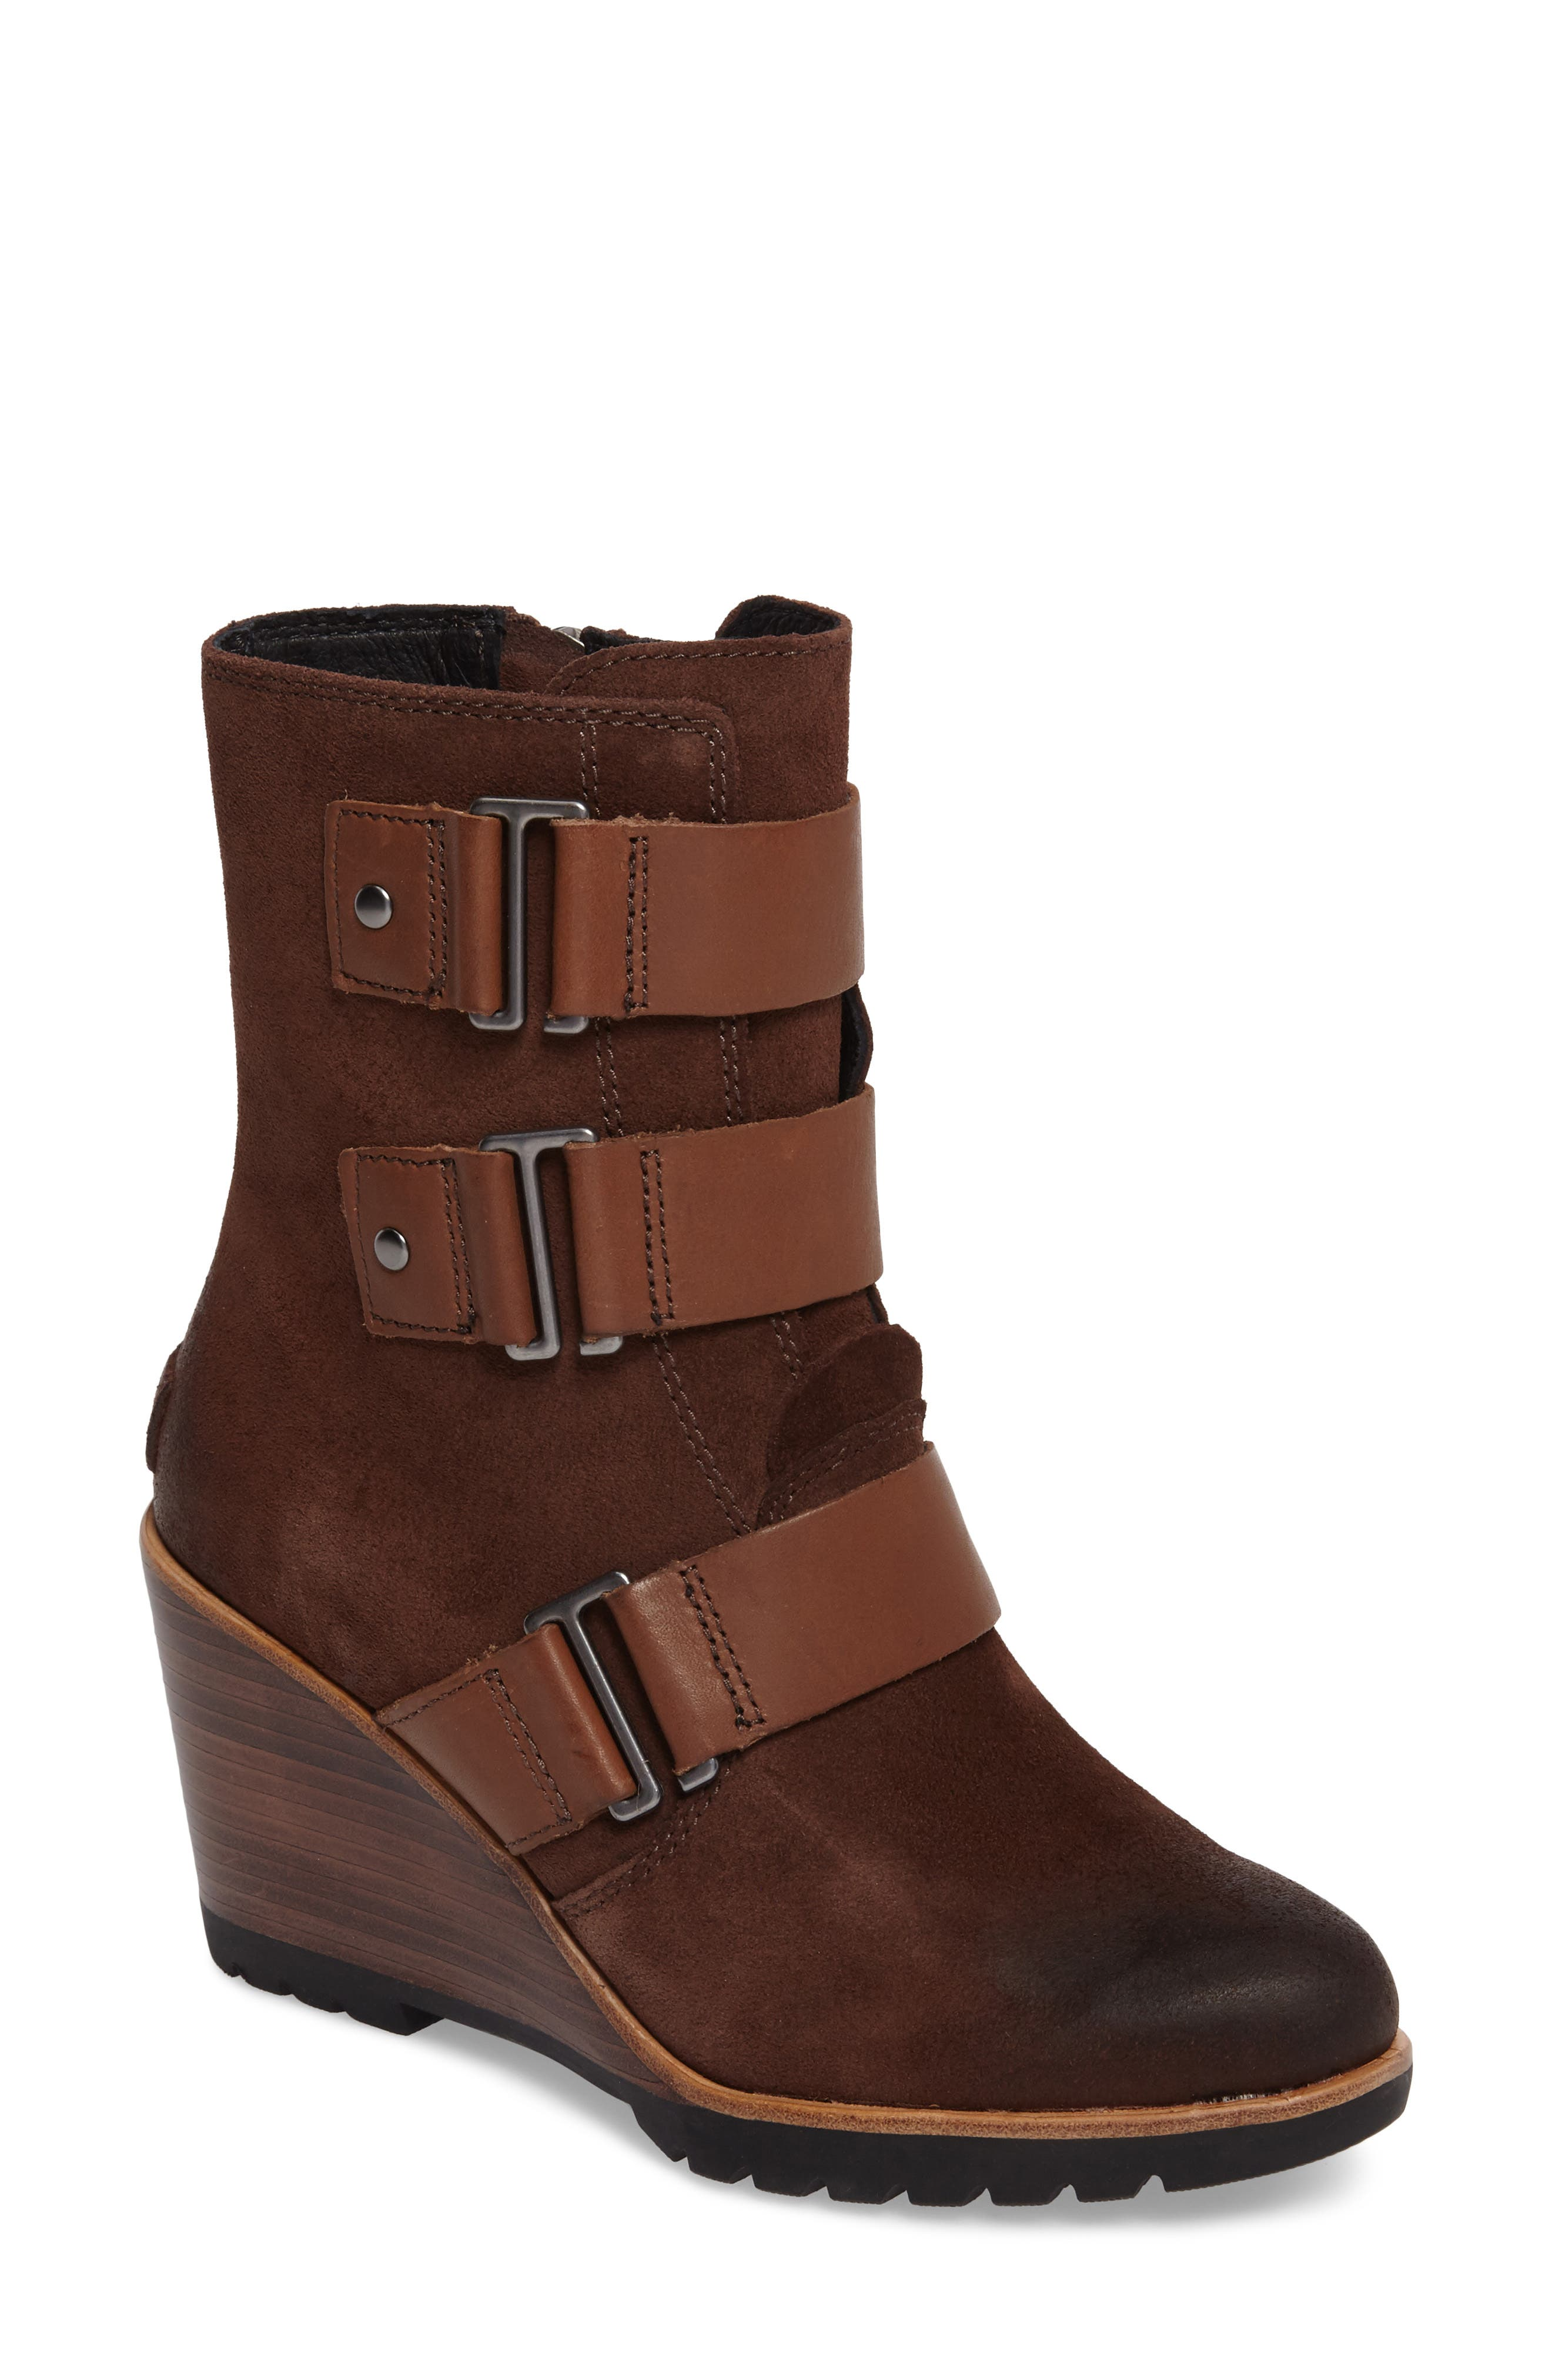 After Hours Waterproof Bootie,                         Main,                         color, Tobacco